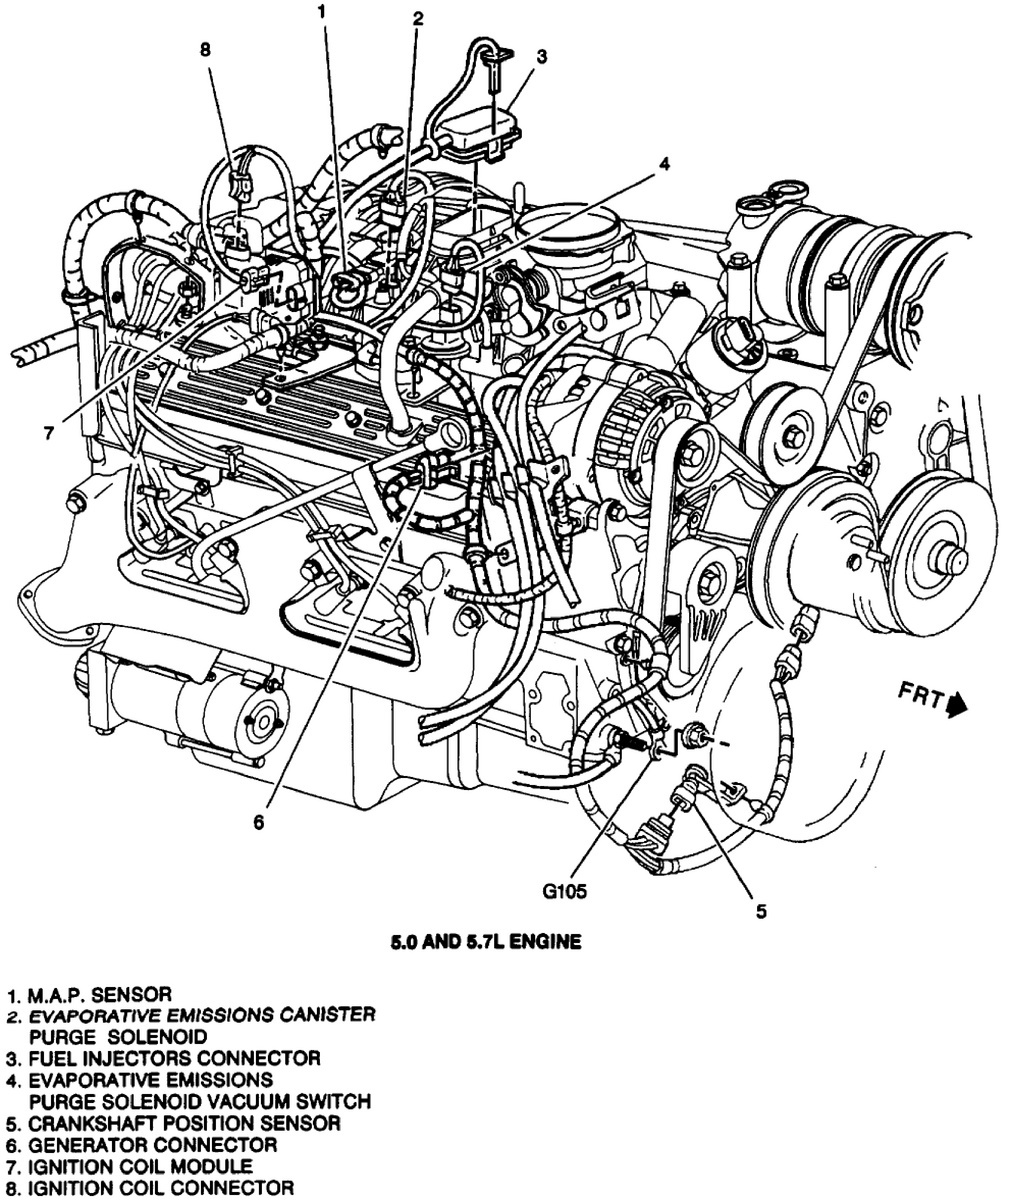 Discussion C4307 ds551809 on 94 chevy silverado engine diagram